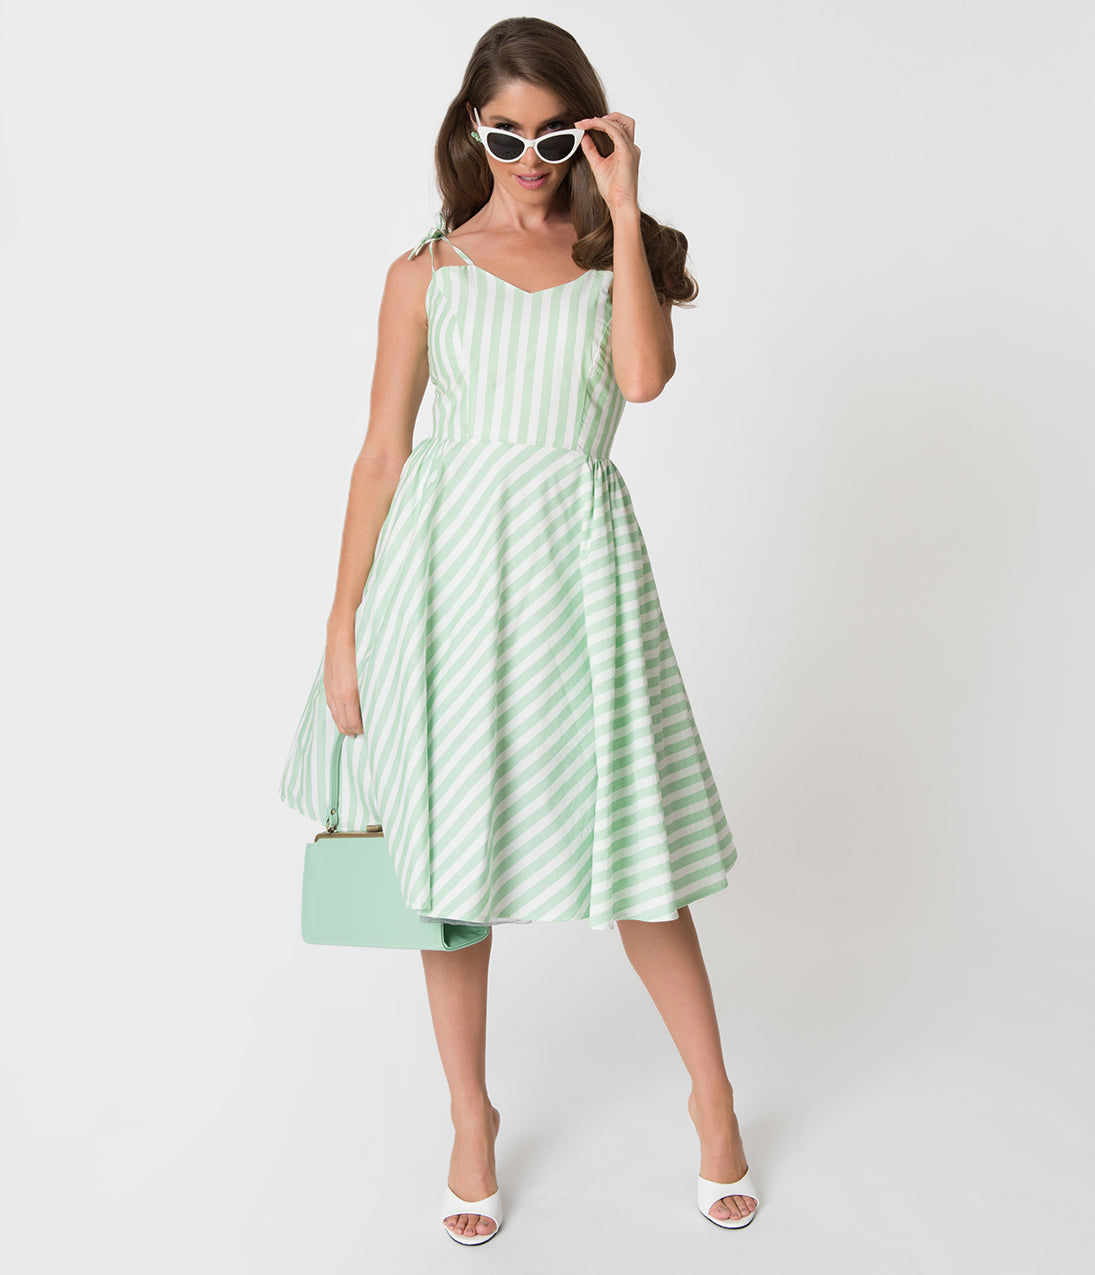 Pin Up Dresses | Pin Up Clothing Banned Light Green  White Candy Stripe Cotton Swing Dress $88.00 AT vintagedancer.com